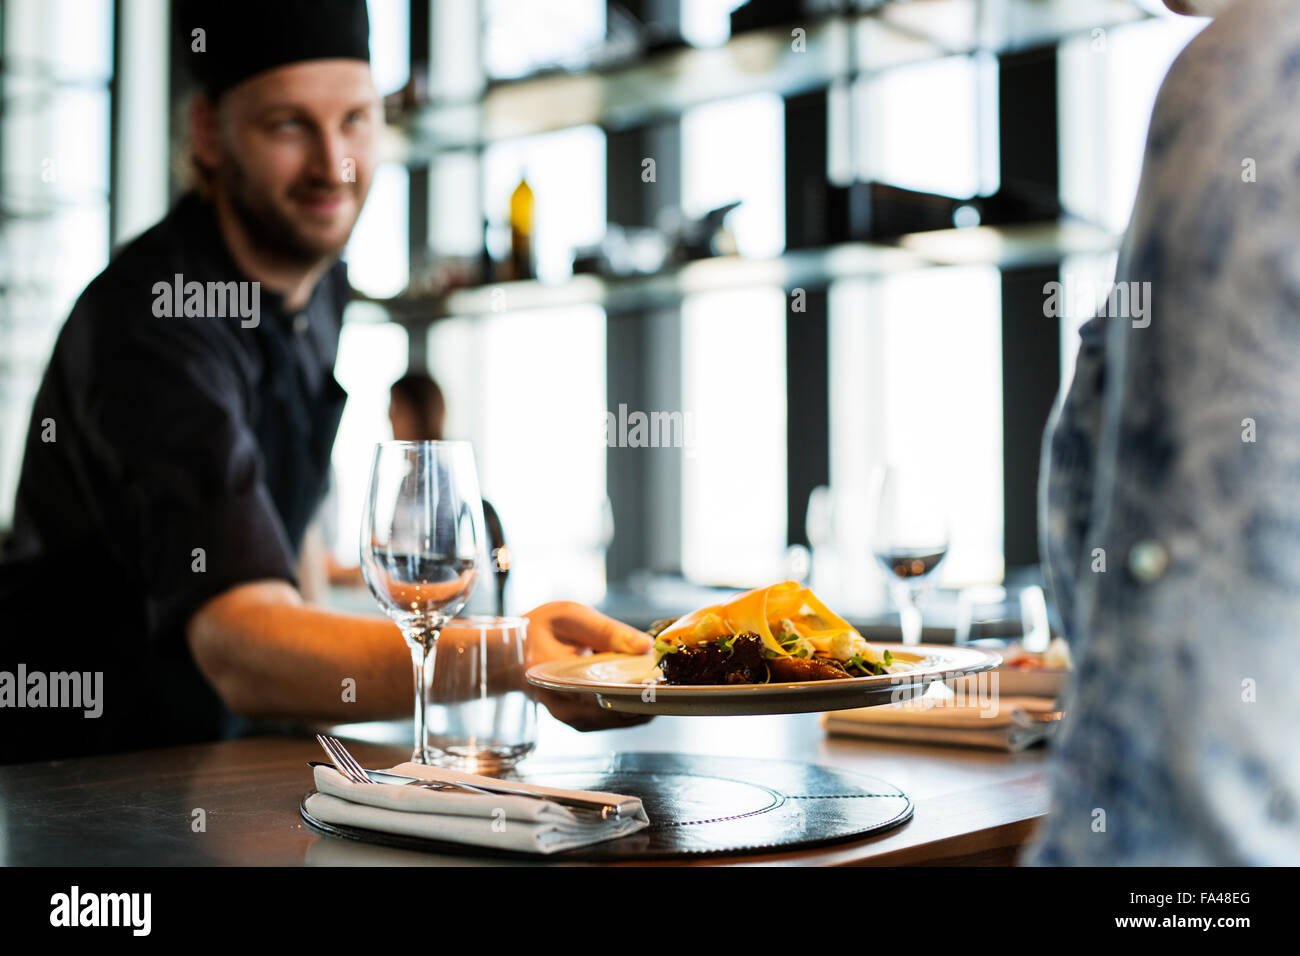 Chef serving dish to customer at Sky bar restaurant - Stock Image